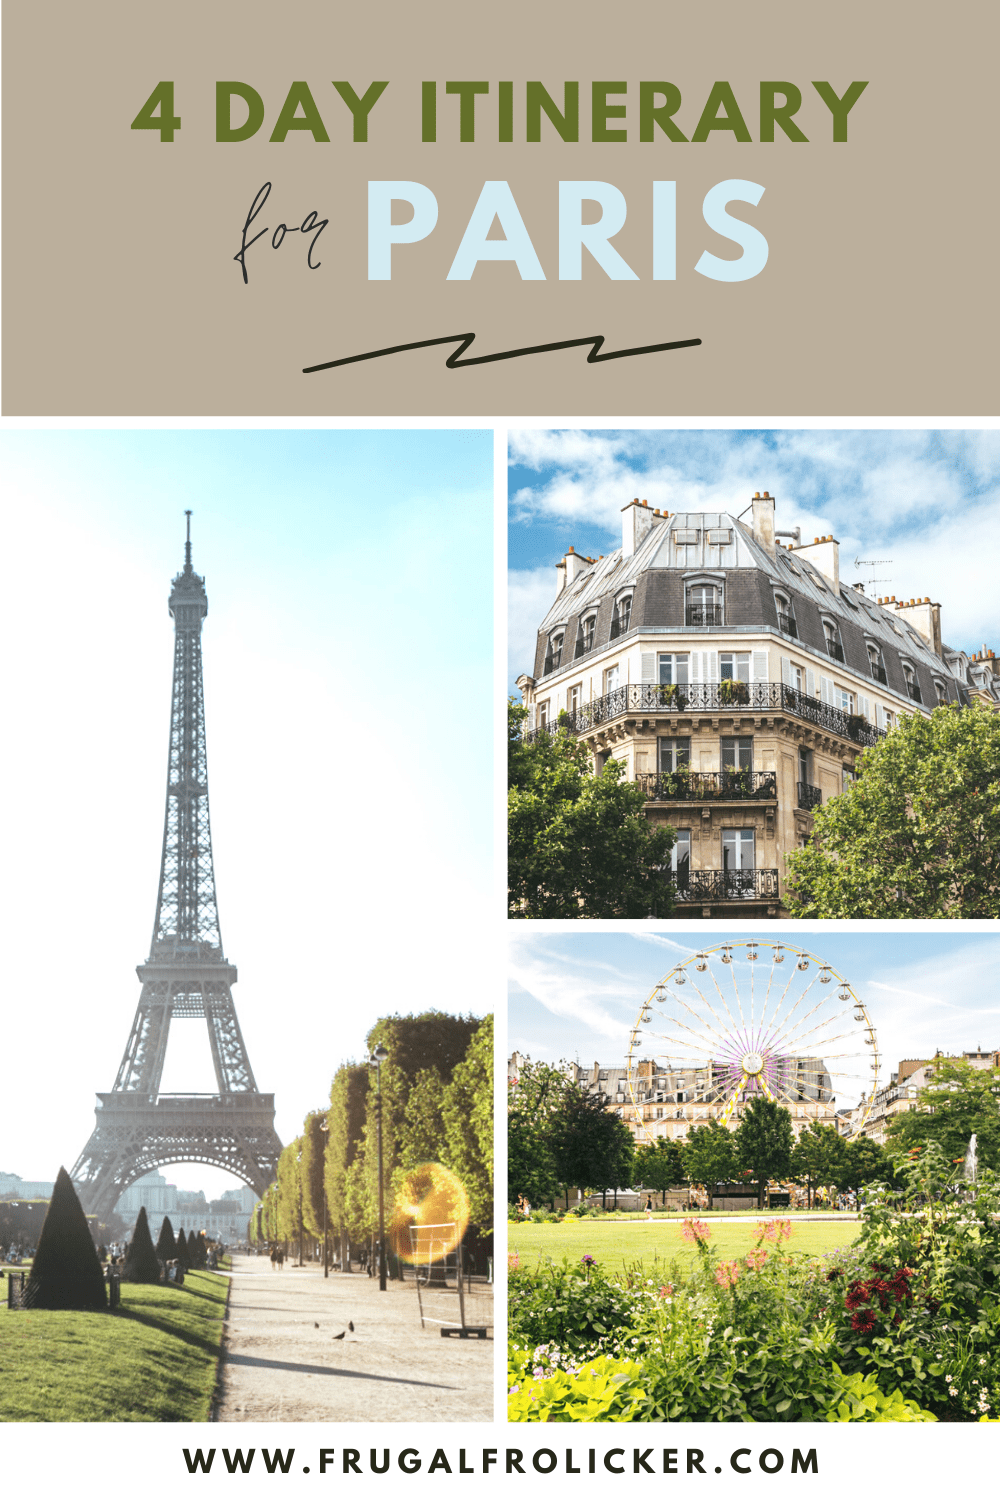 What To Do in Paris For 4 Days: A 4 Day Paris Itinerary